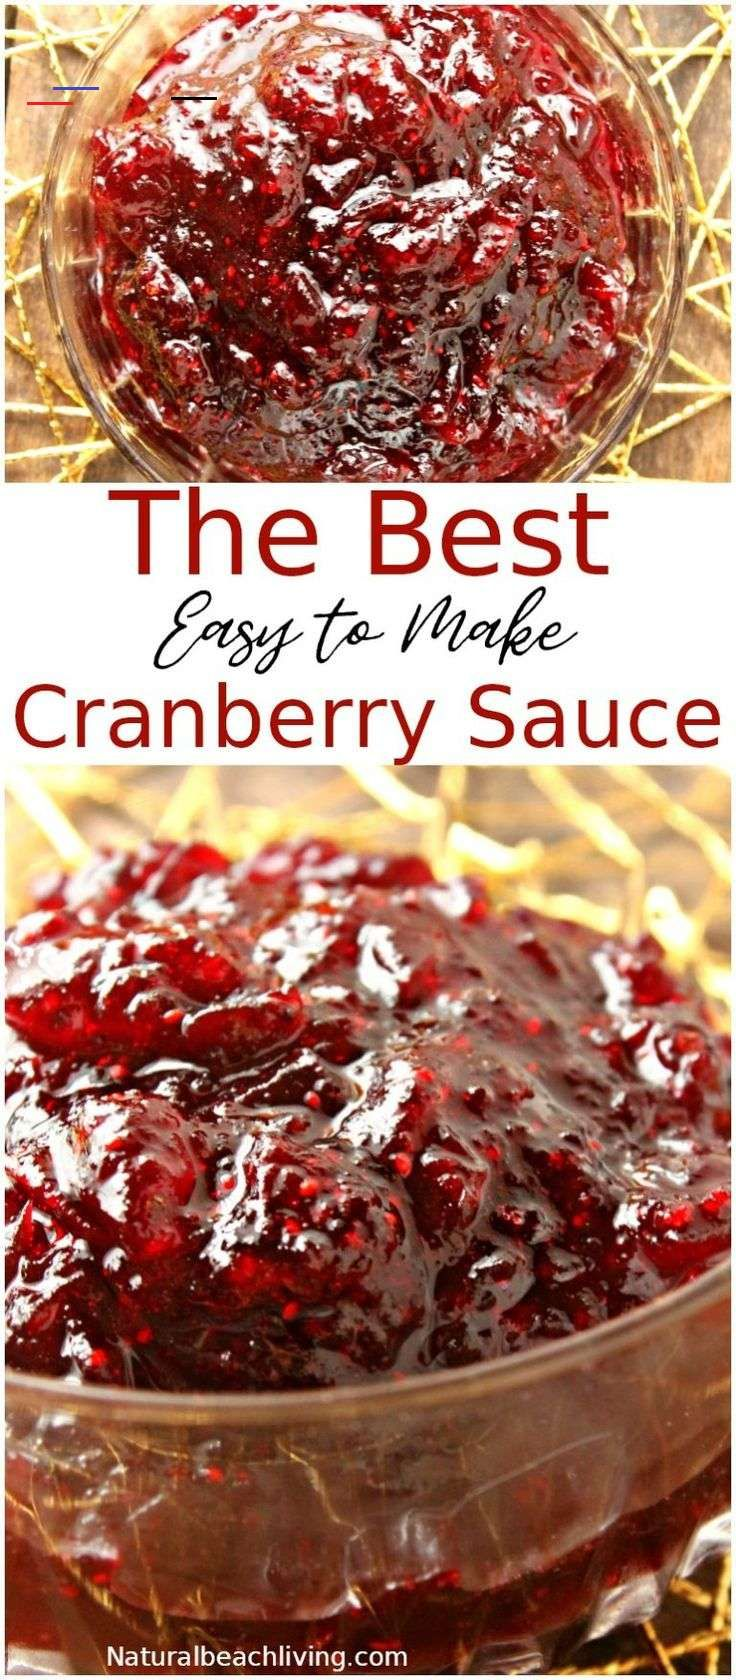 Easy Homemade Cranberry Sauce That Everyone Loves - Natural Beach Living Easy Homemade Cranberry Sauce That Everyone Loves - Natural Beach Living Easy Homemade Cranberry Sauce That Everyone Loves, Easy Thanksgiving recipes, Delicious homemade cranberry sauce to make ahead of time, Holiday recipe, Cranberry Sauce Thanksgiving Recipe #Thanksgiving #Thanksgivingrecipes<br> Easy Homemade Cranberry Sauce for Thanksgiving and Christmas